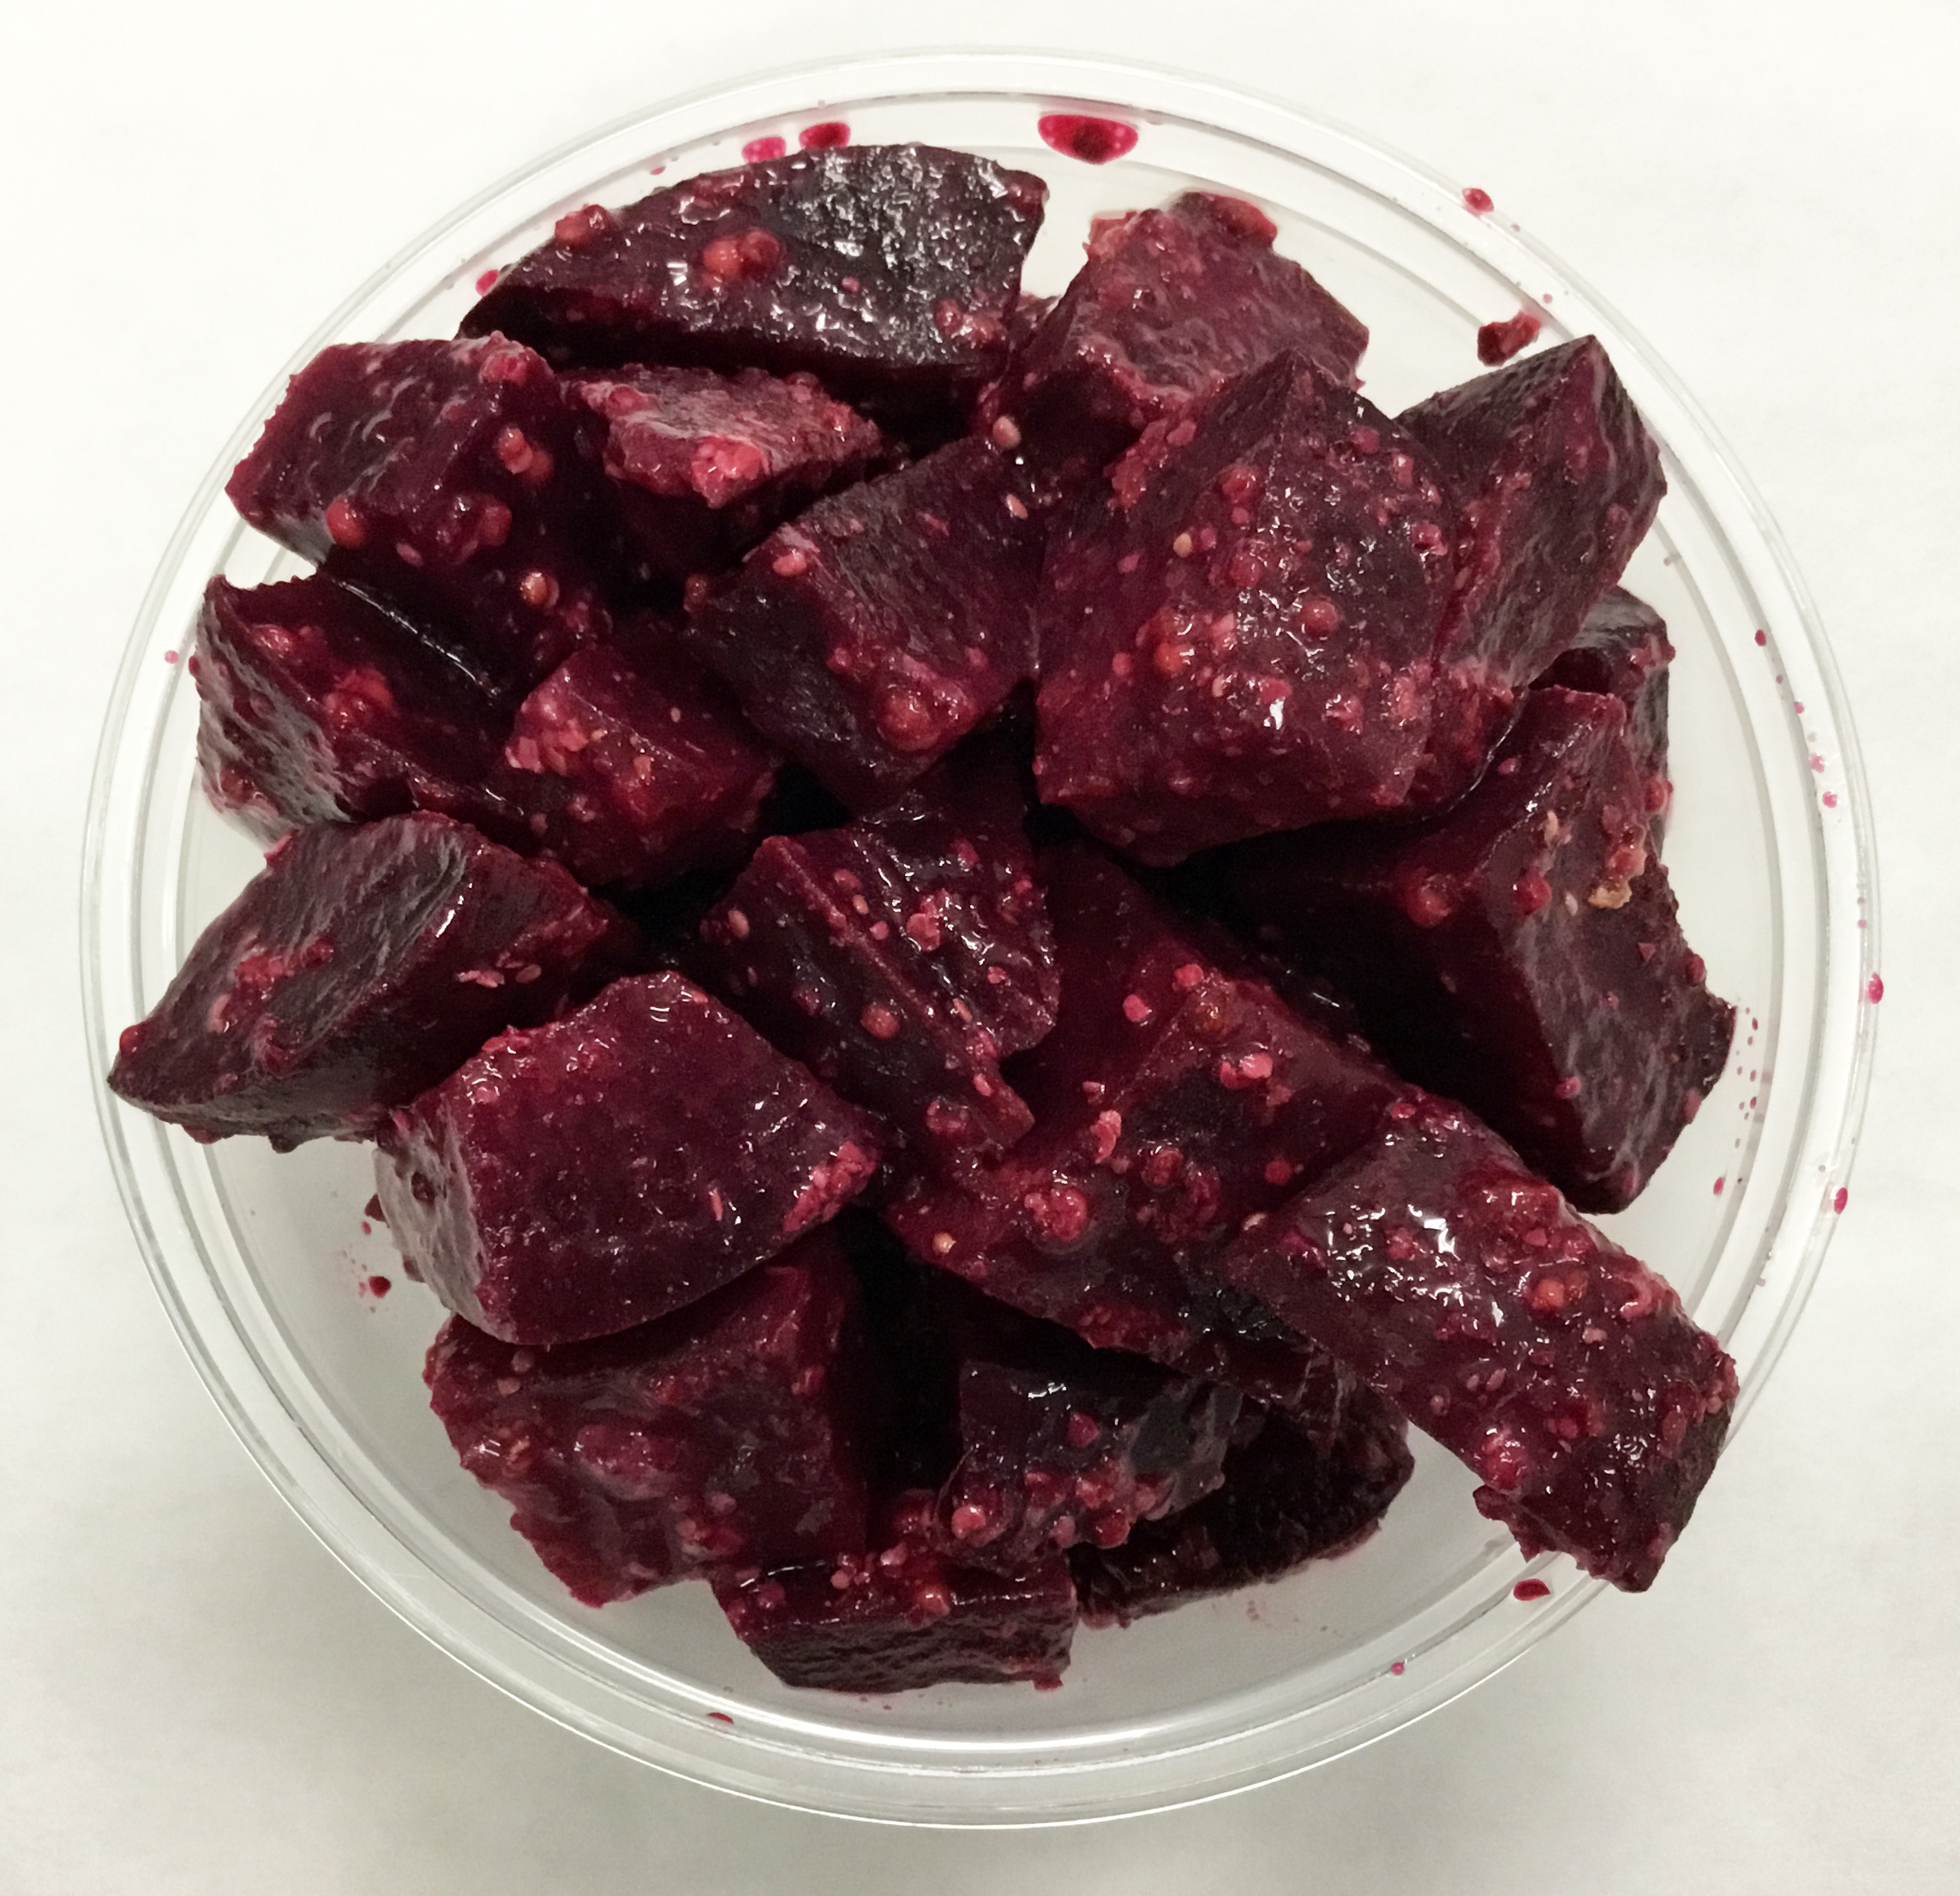 Red beets with a French vinaigrette dressing.